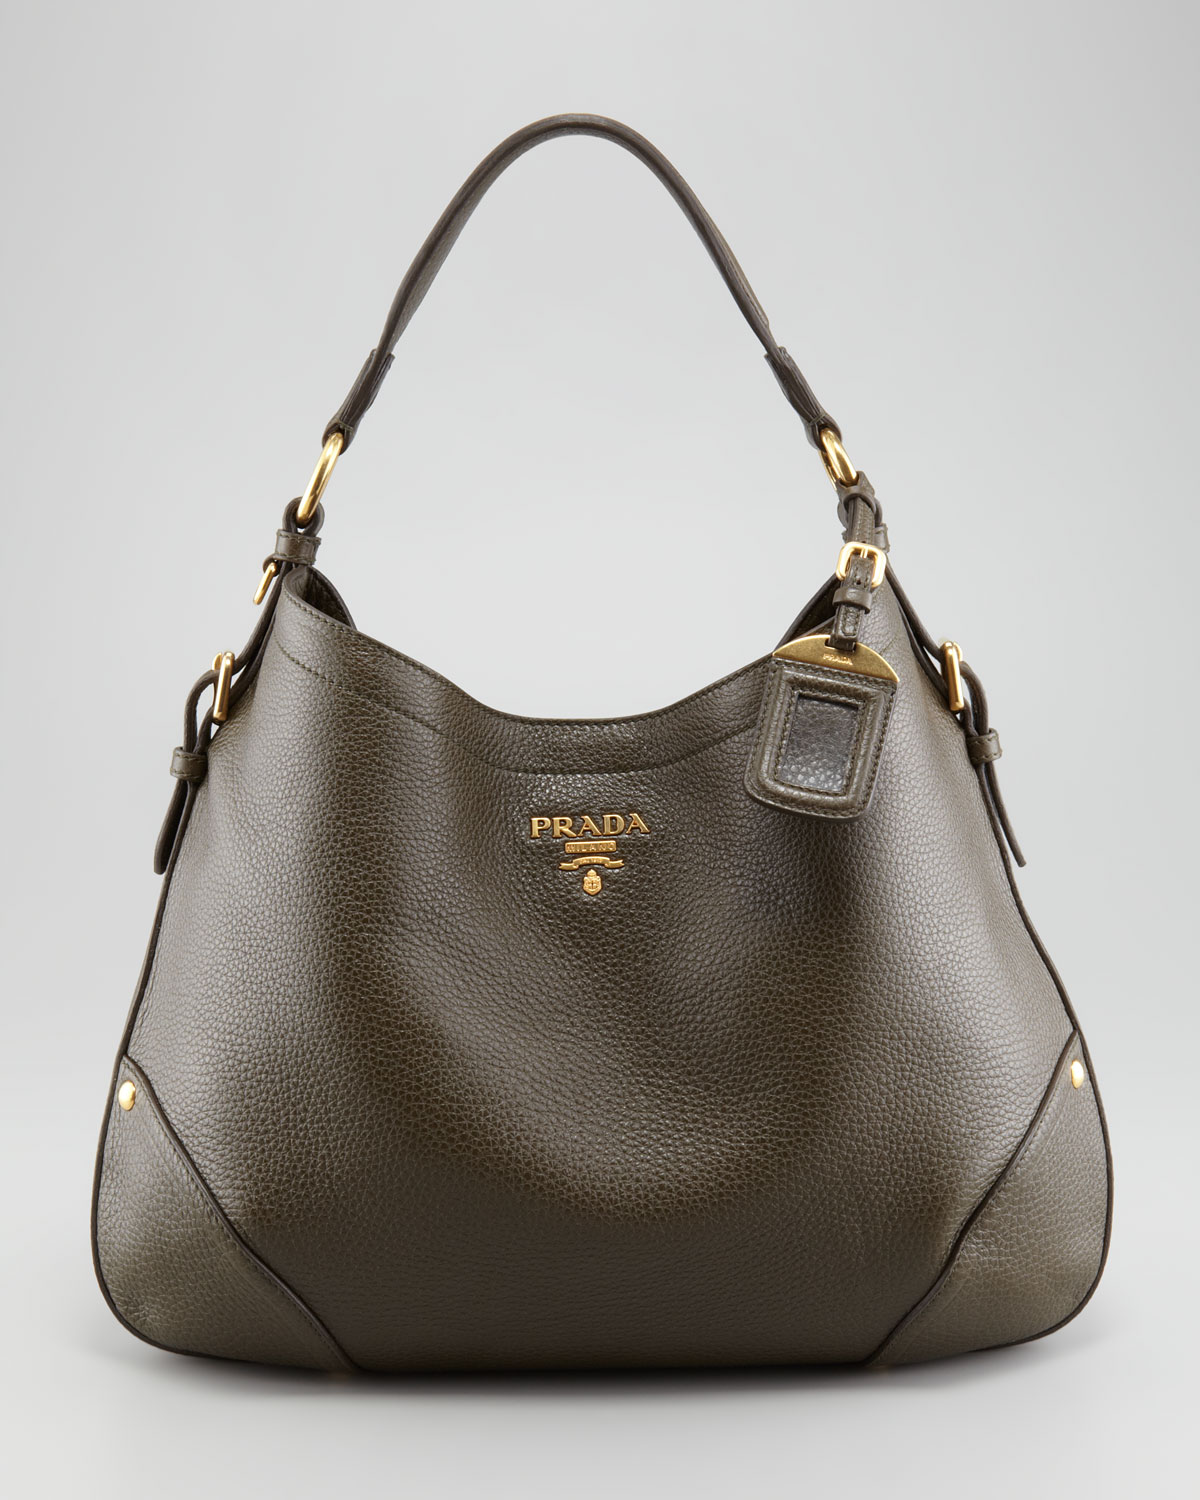 Prada Vitello Daino Snap Hobo Bag in Brown | Lyst